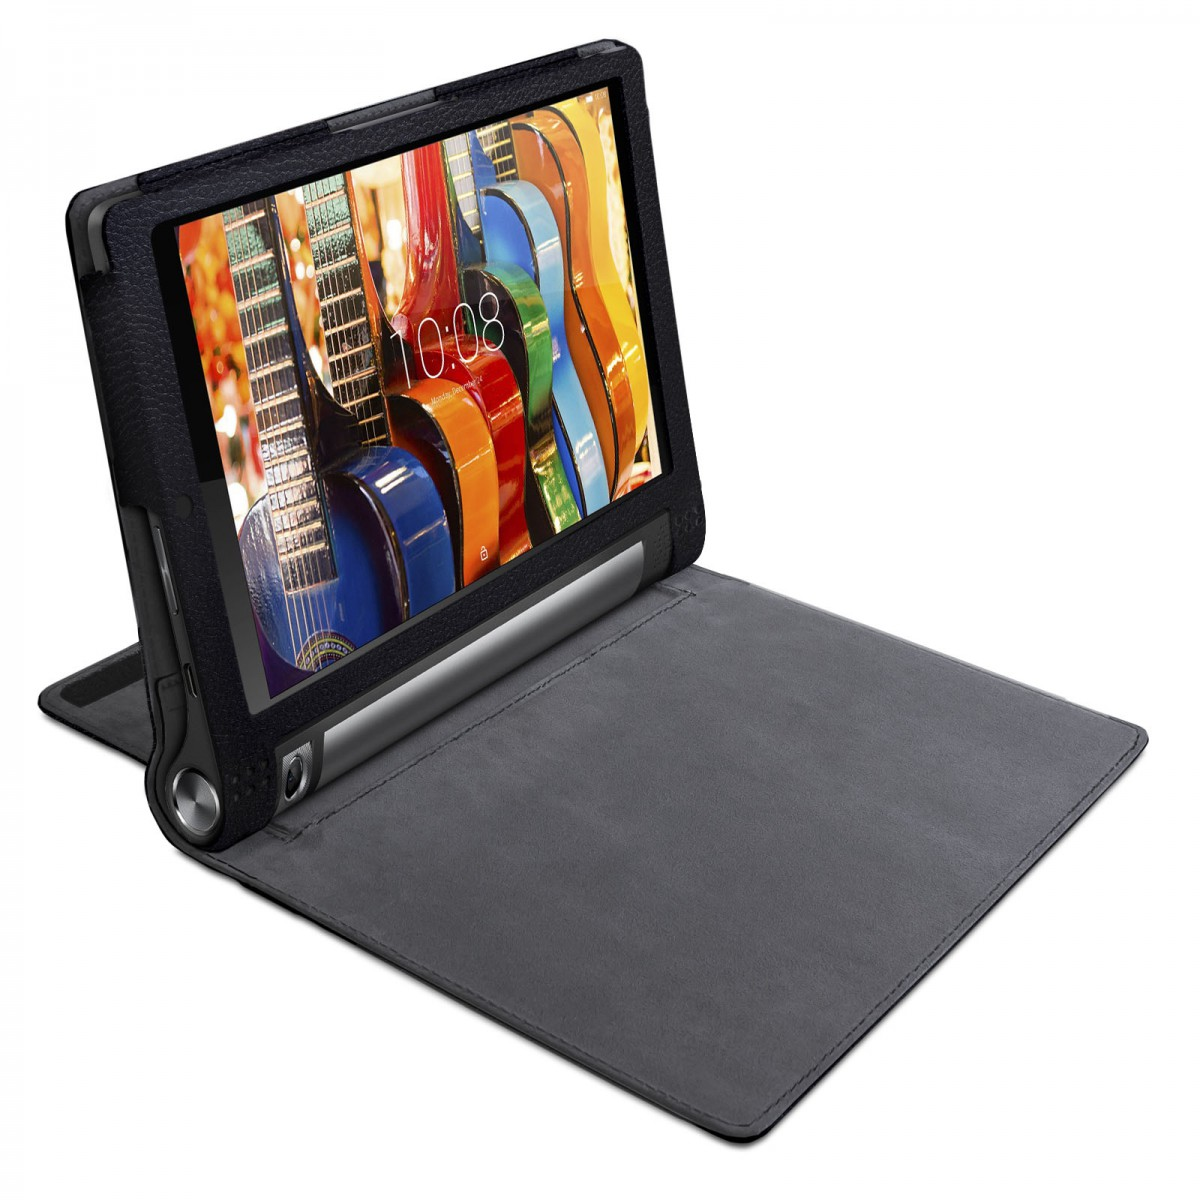 efabrik tasche f r lenovo yoga 3 8 zoll h lle tablet case. Black Bedroom Furniture Sets. Home Design Ideas